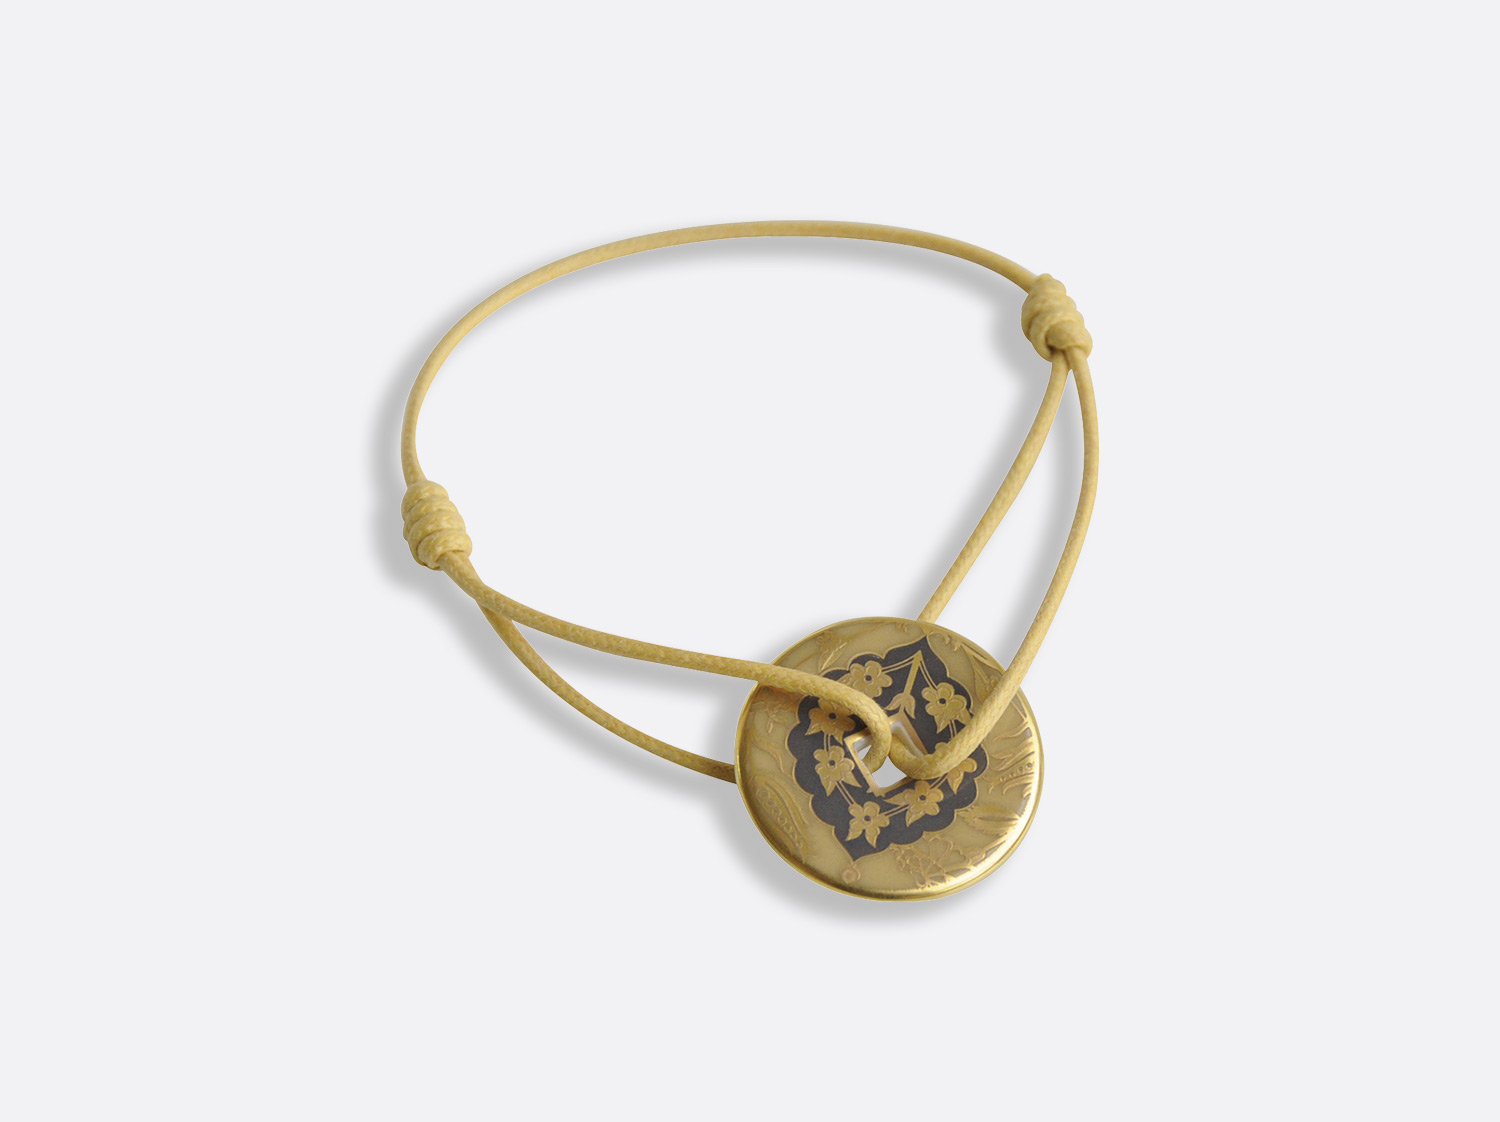 Bracelet Talisman en porcelaine de la collection Sultane Ocre Bernardaud